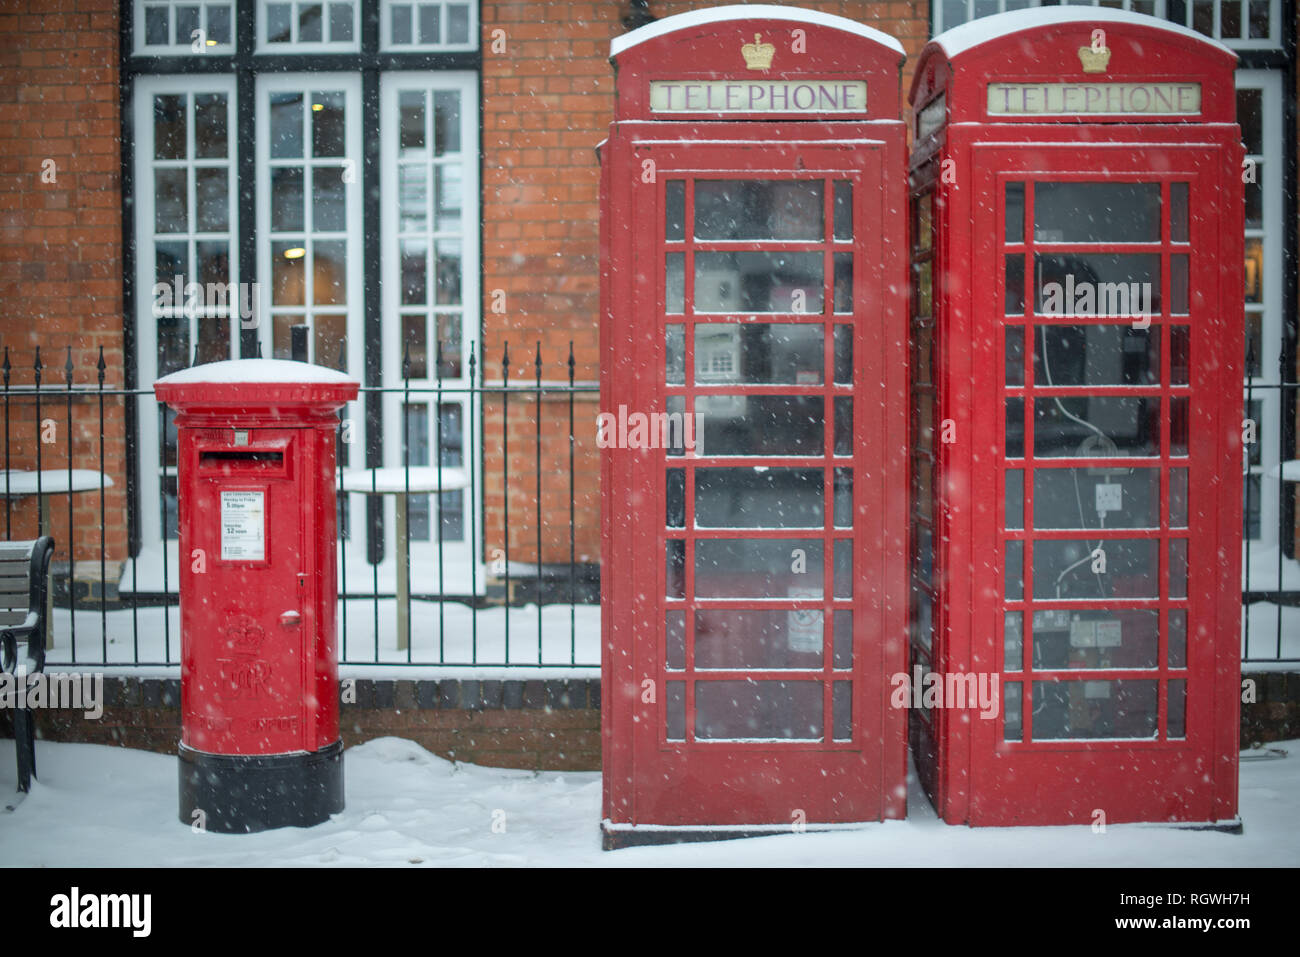 typical red post box and telephone kiosk on UK street during blizzard with snow on top - Stock Image